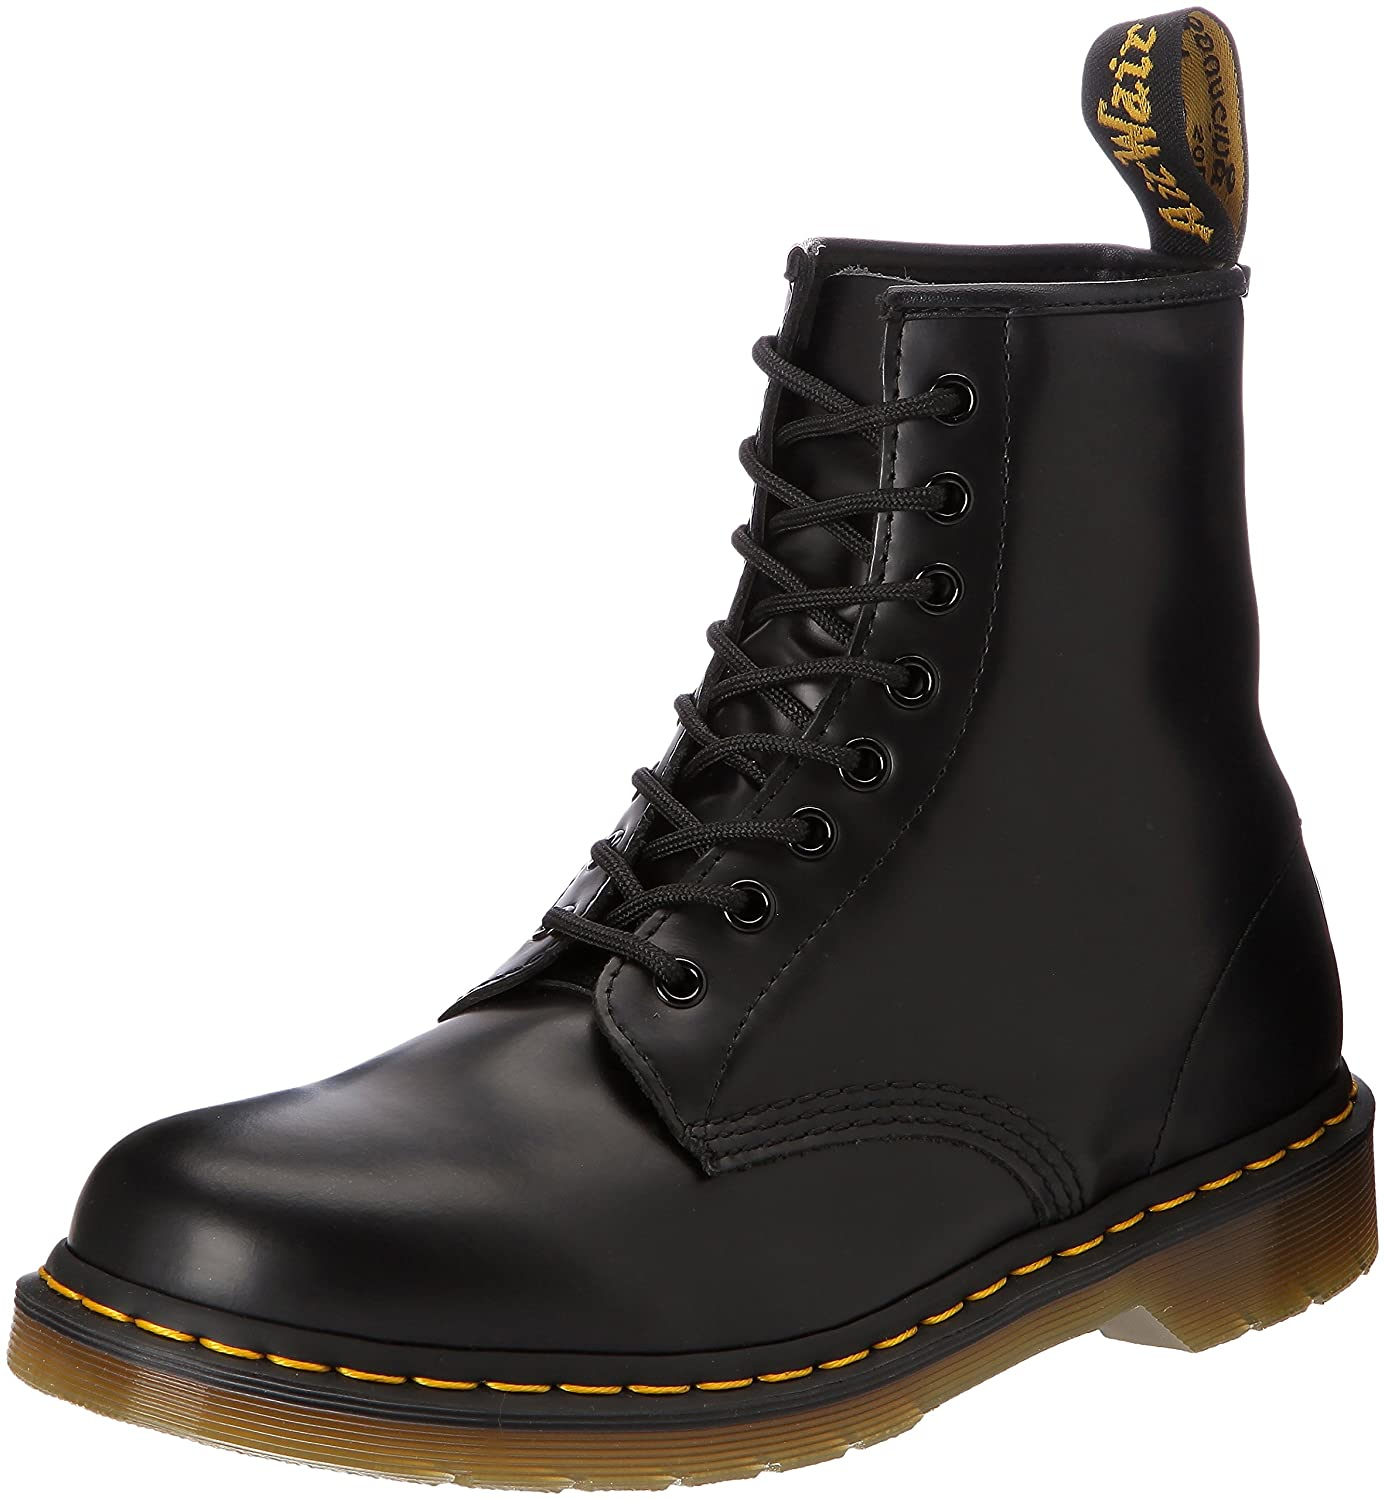 Dr. Martens 1460 Originals Eight-Eye Lace-Up Boot B0007PKL5C 12 UK (US Men's 13 M)|Black Smooth Leather